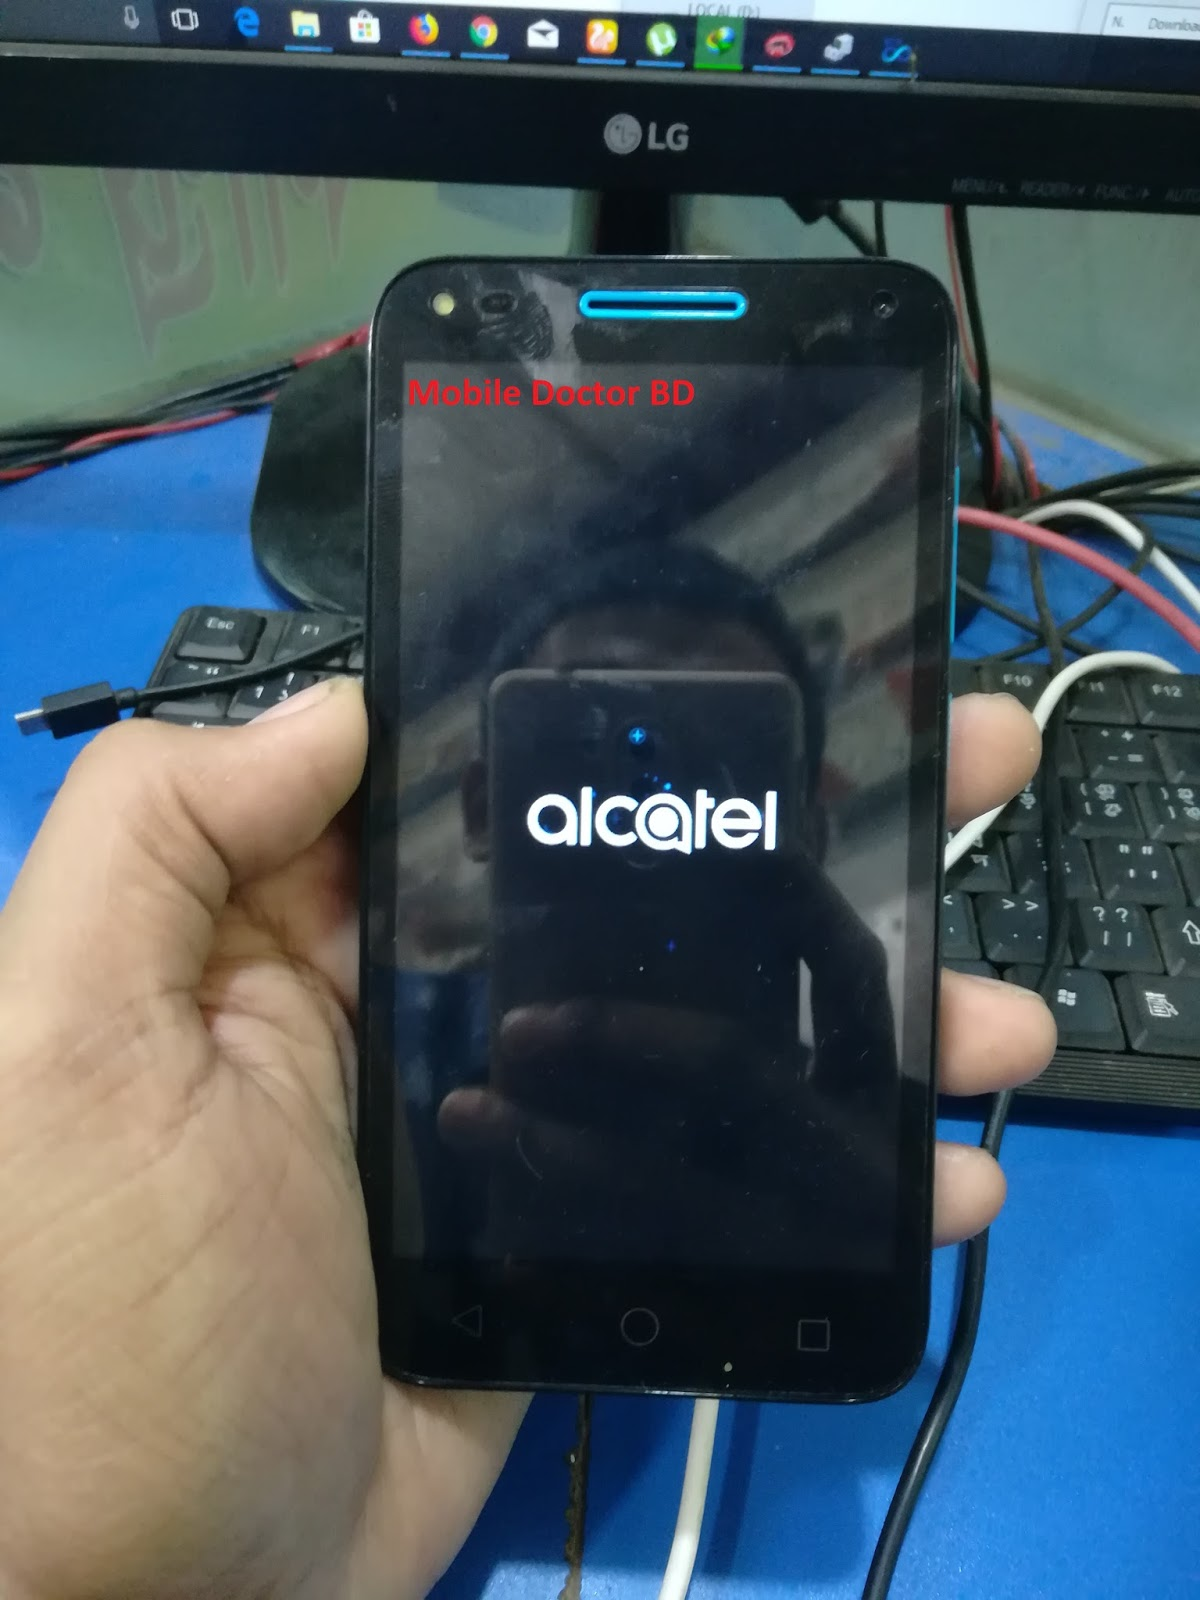 Alcatel / TCL 4047D U5 MT6580 Firmware Update Not Without Password